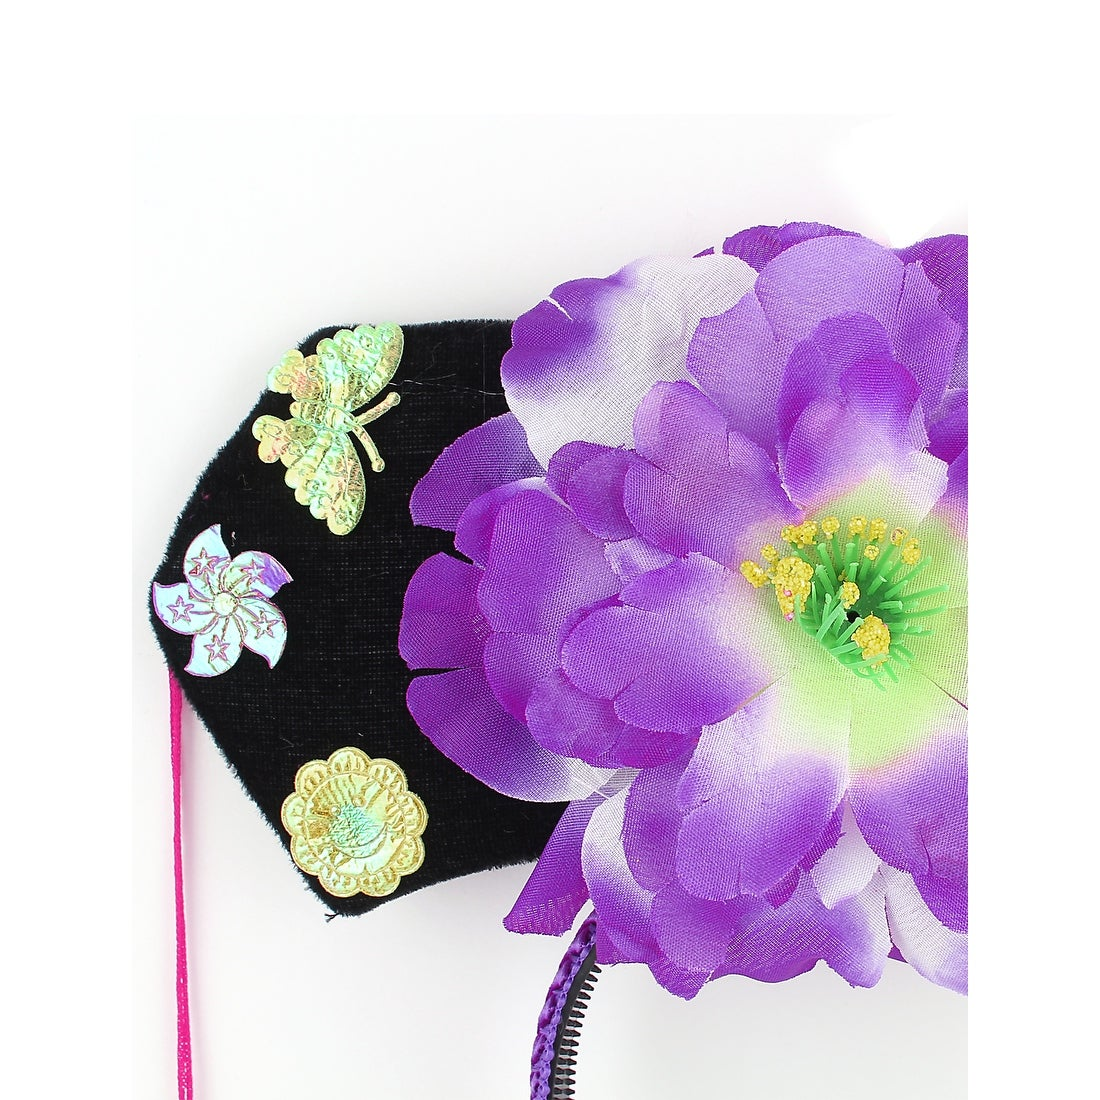 cba9a78e960 Shop Unique Bargains Girls Tassels White Purple Peony Accent Oriental  Chinese Princess Hairband Hat - Free Shipping On Orders Over  45 -  Overstock.com - ...